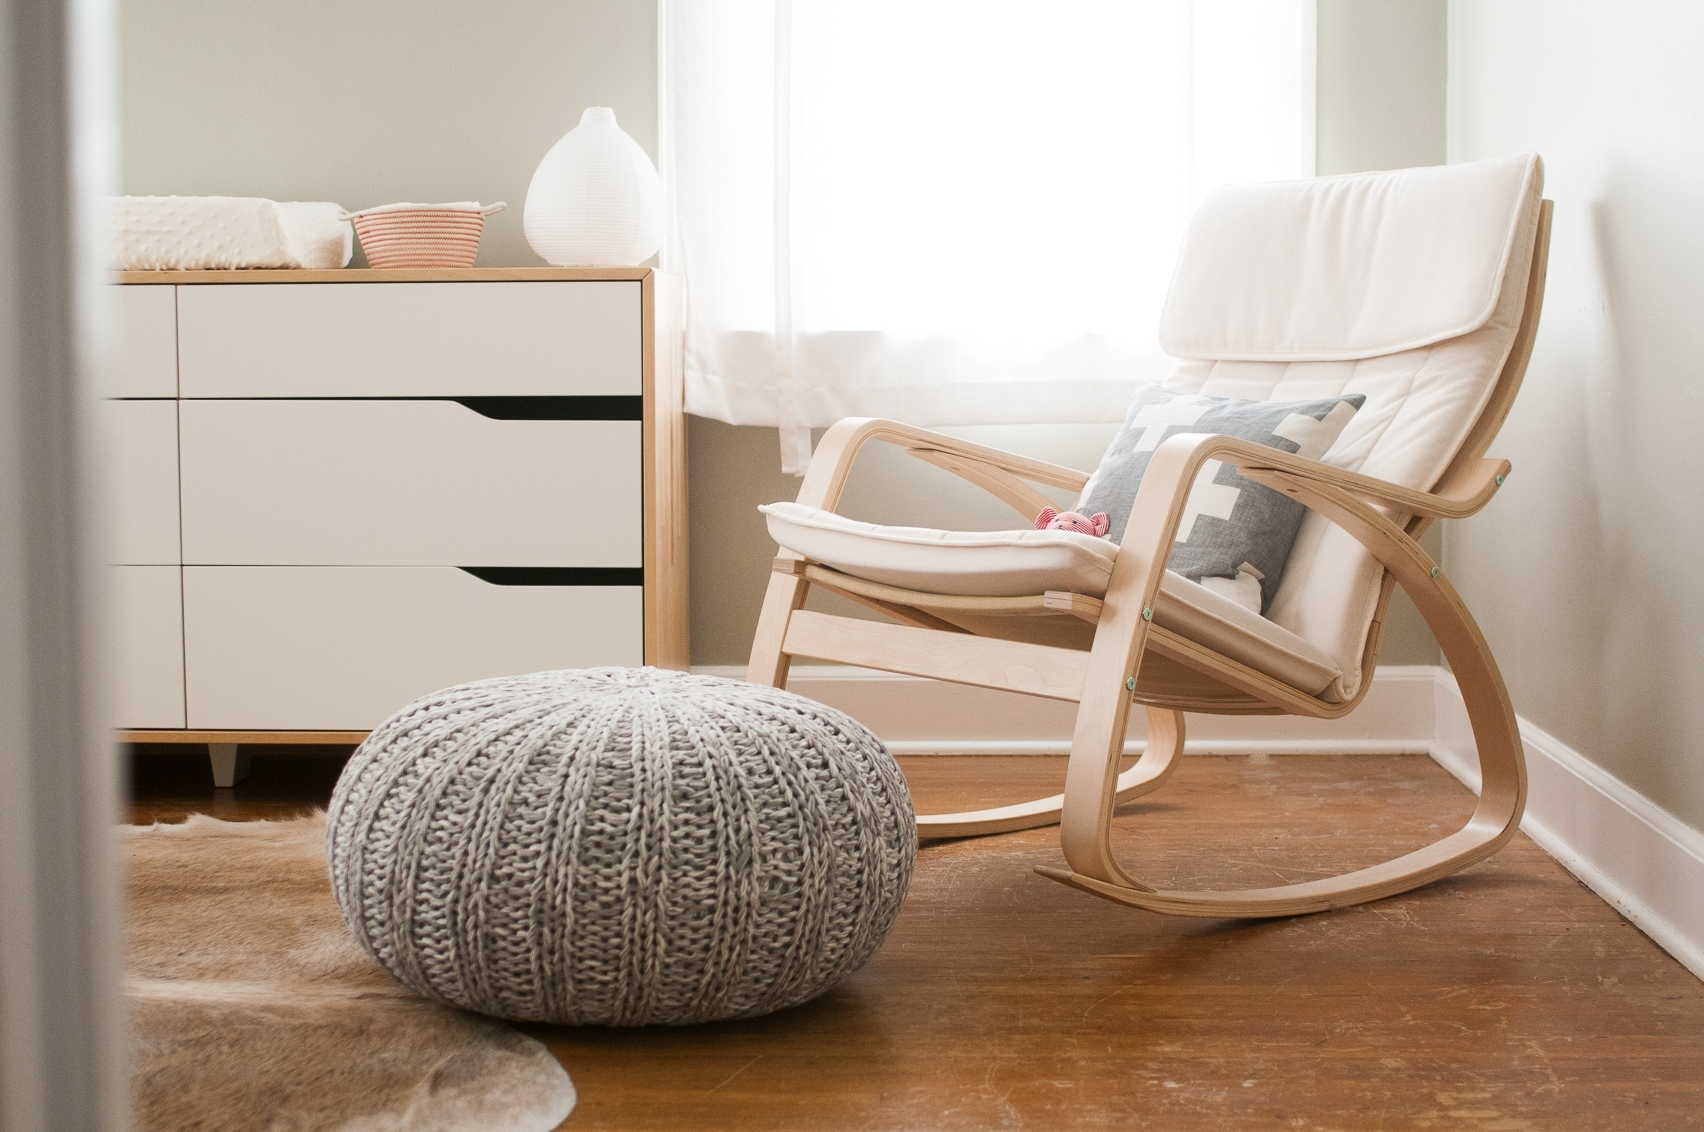 Rocking Chairs For Nursing Throughout Newest Nursery Rocking Chair, Rocks! – Tcg (View 13 of 15)